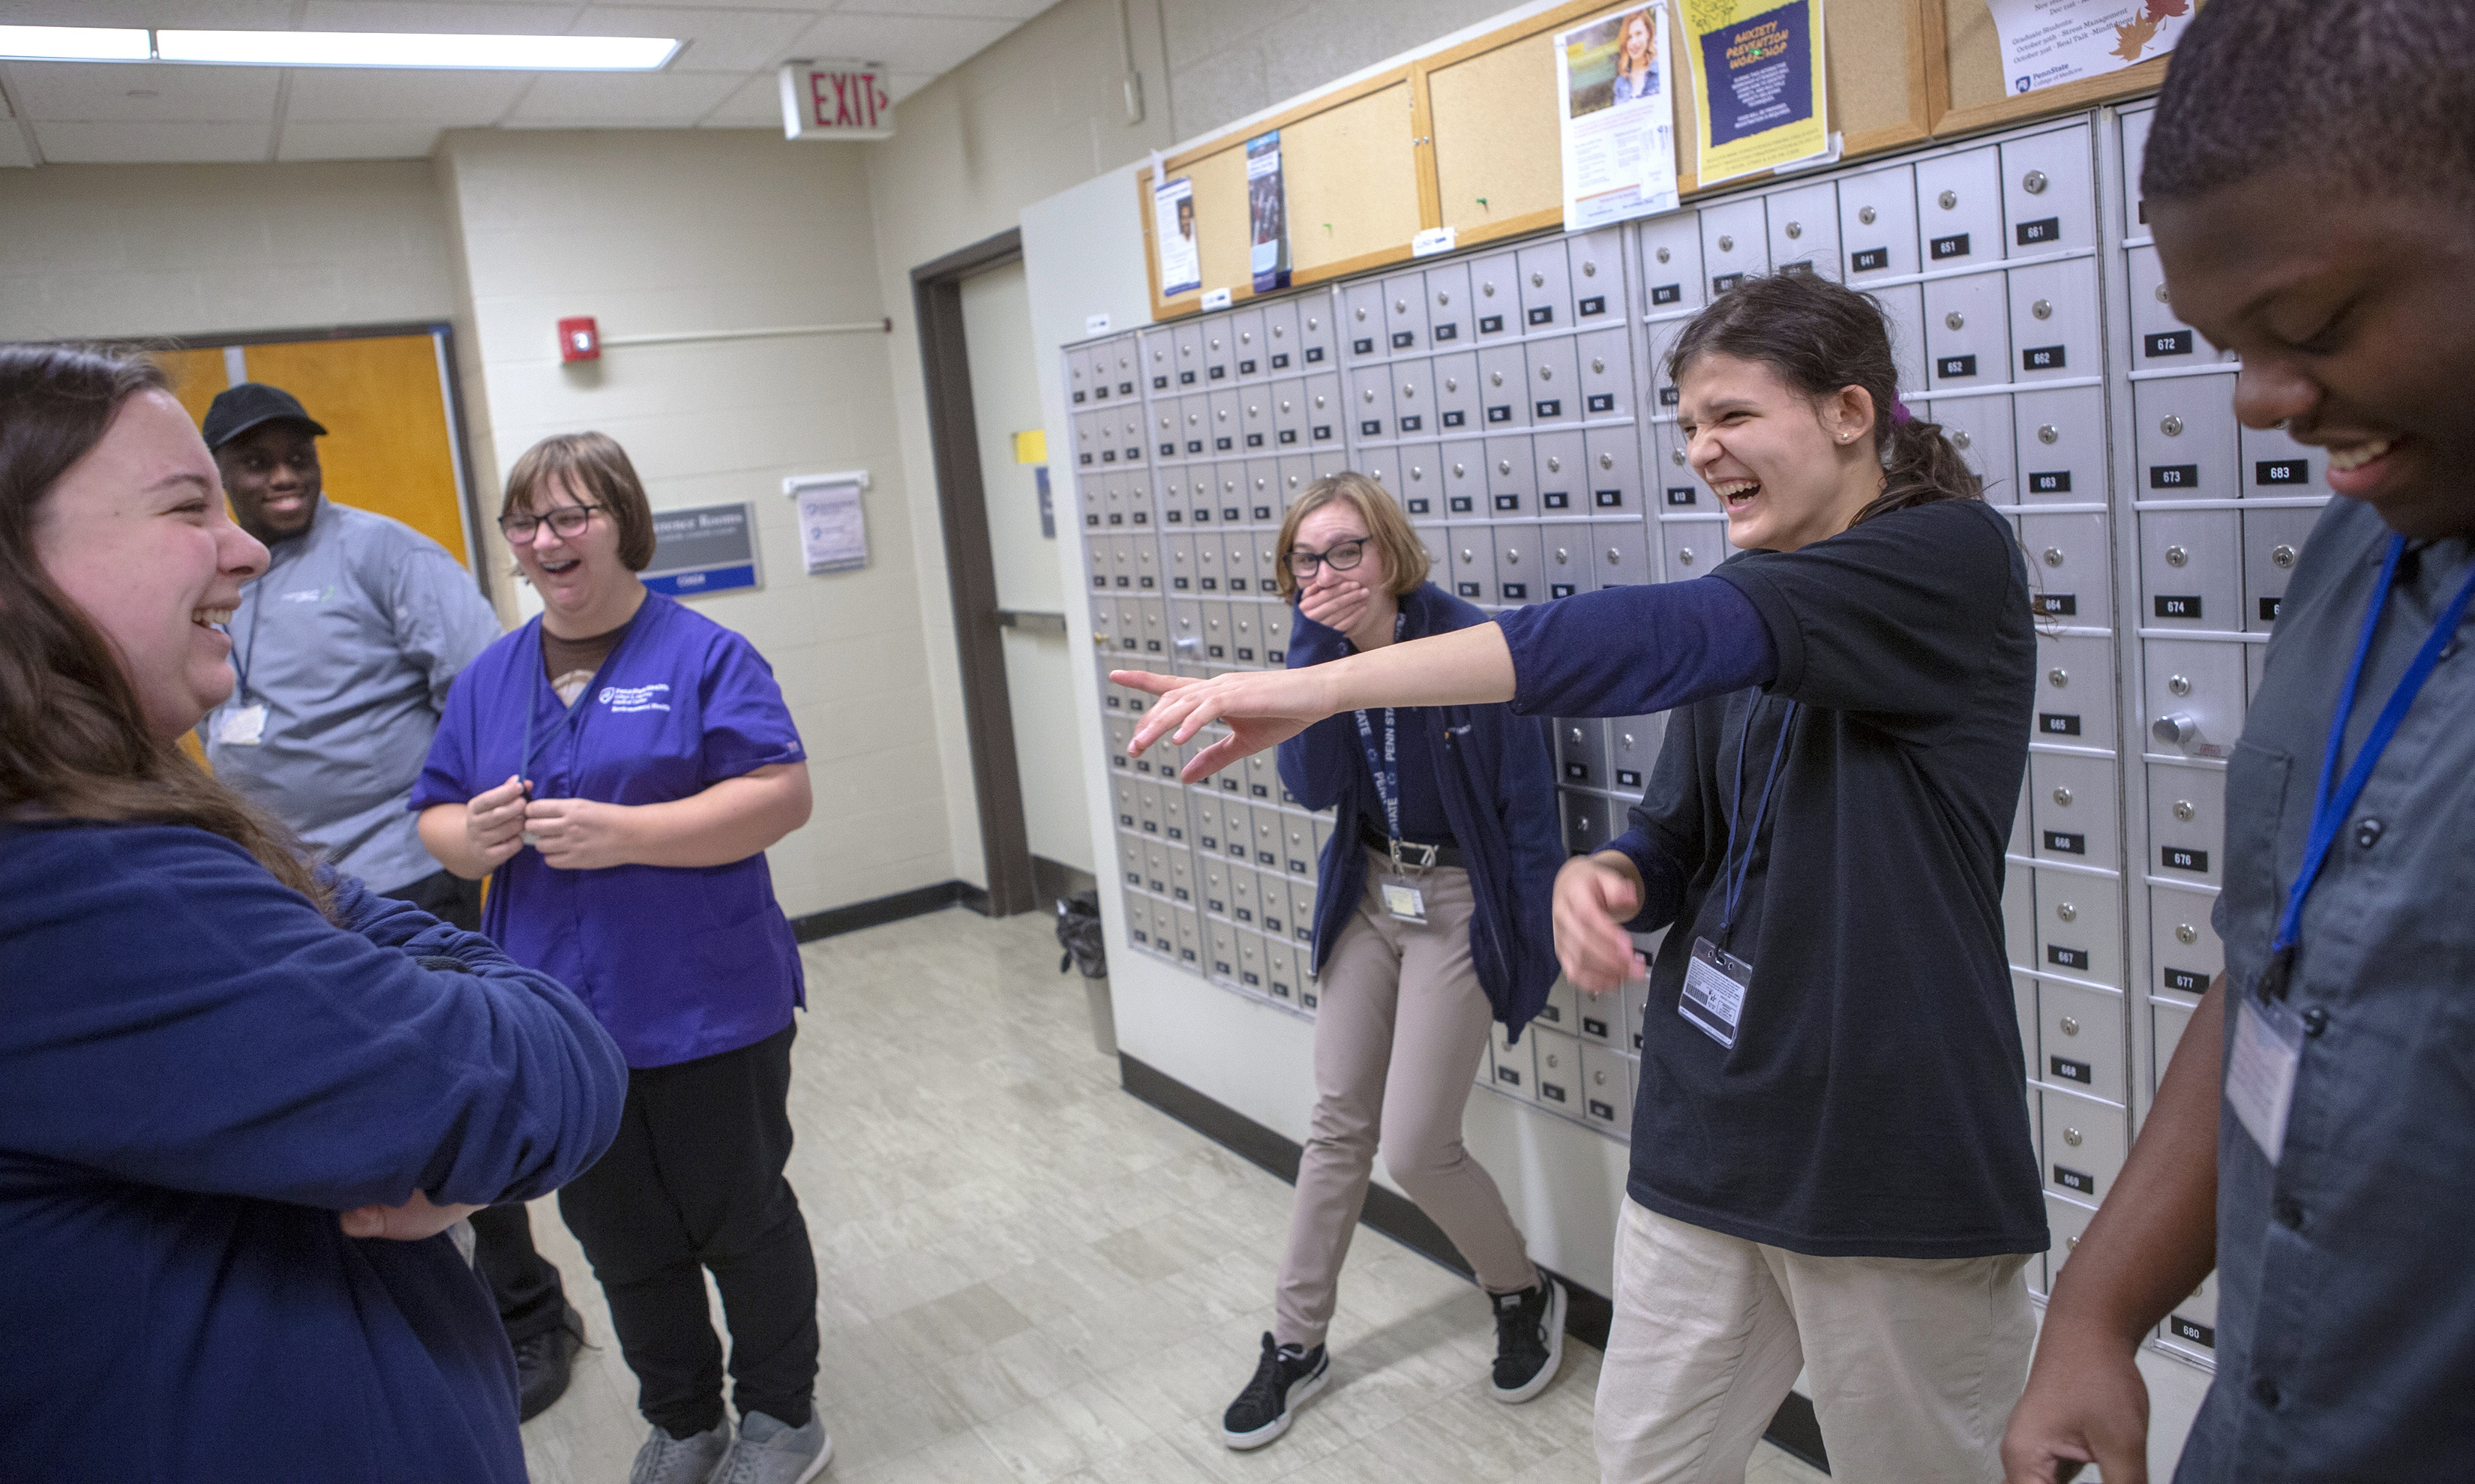 Project Search students play an icebreaker game in the hallway outside their classroom at Penn State Health. Metal mailboxes and bulletin boards line the side of the hall. Cheyanne Wilson laughs and points at Emily Swanic, who is laughing with her arms crossed over her chest. Ava Pyles covers her mouth with her hand as she laughs, while James Silver, Samantha Brace and James Morrison look on.